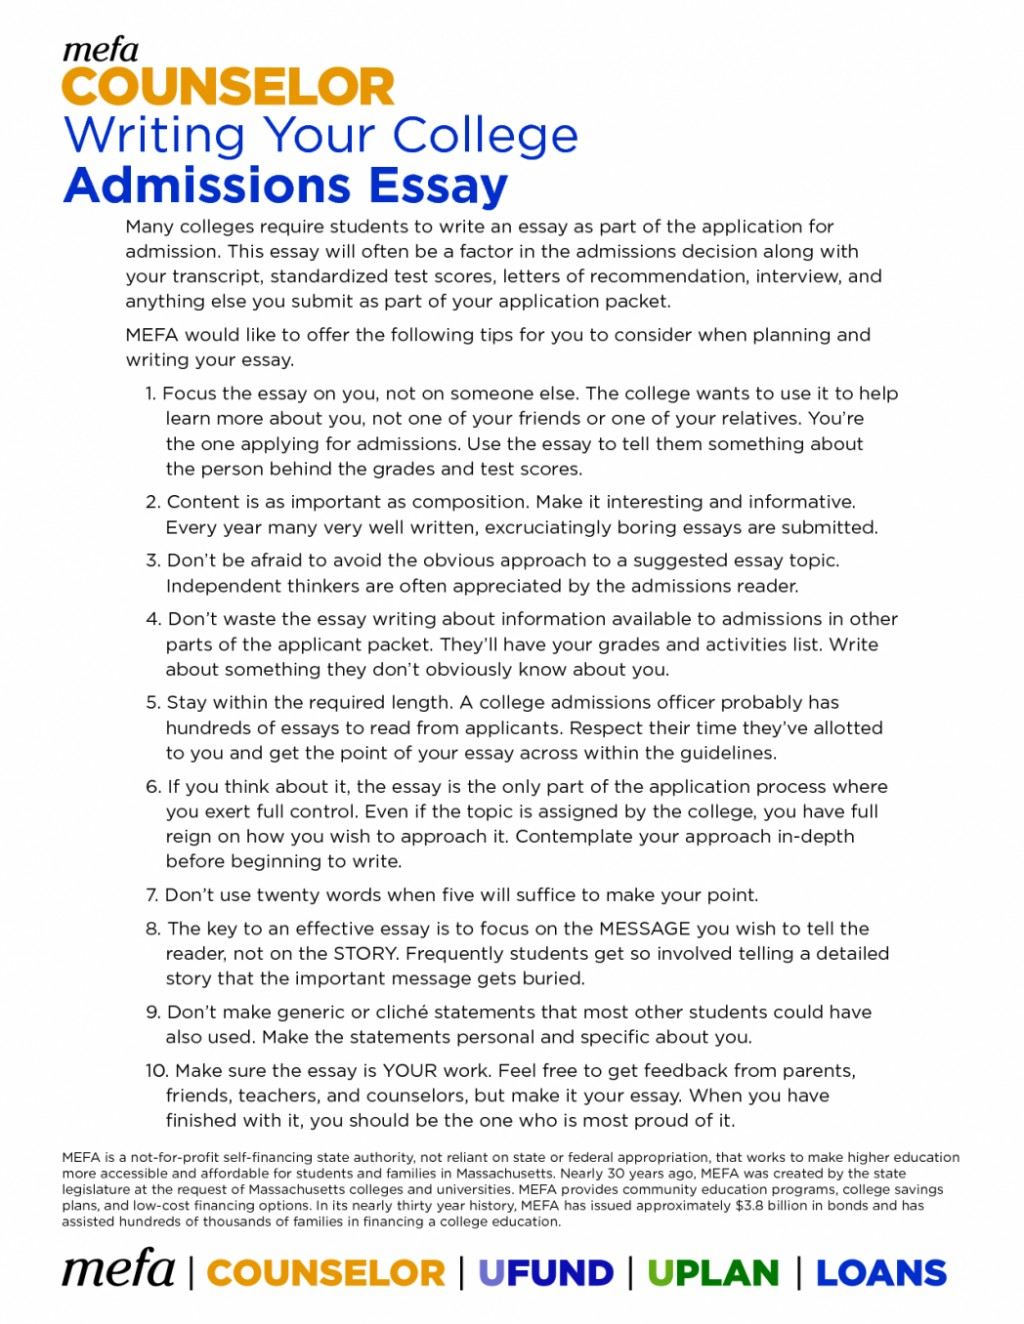 003 Essay Example How Long Should College Essays Writing Help High School Many Paragraphs Application Wuaom Pages Words What About Formatted In Mla Format Fascinating Be On Apply Texas My Large